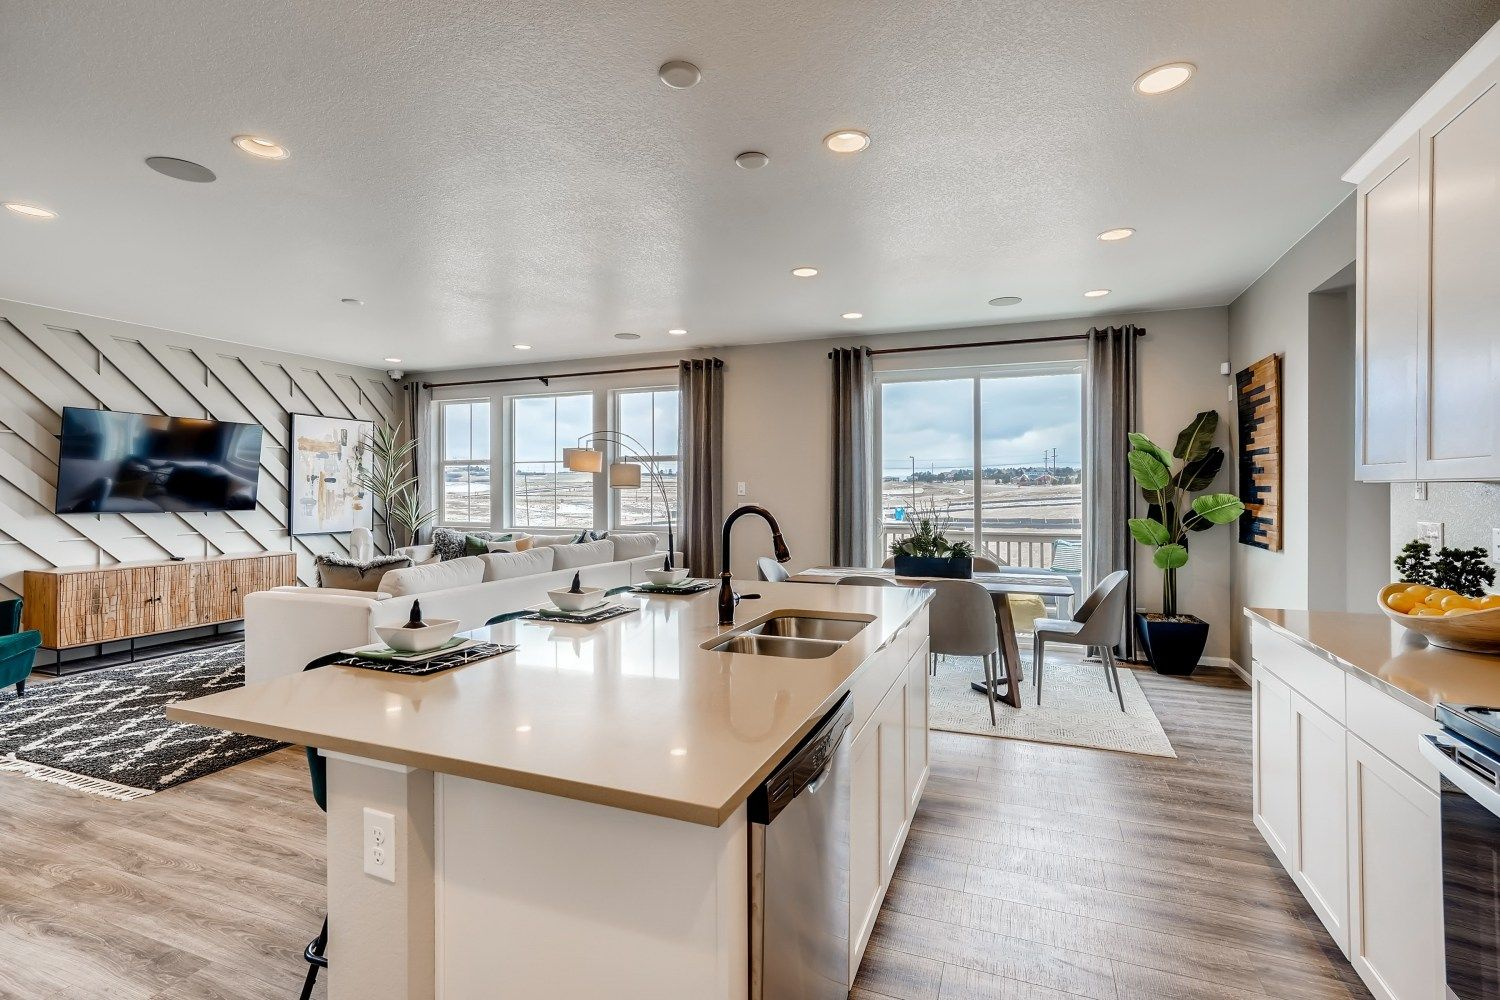 Kitchen featured in The Georgetown By Taylor Morrison in Denver, CO